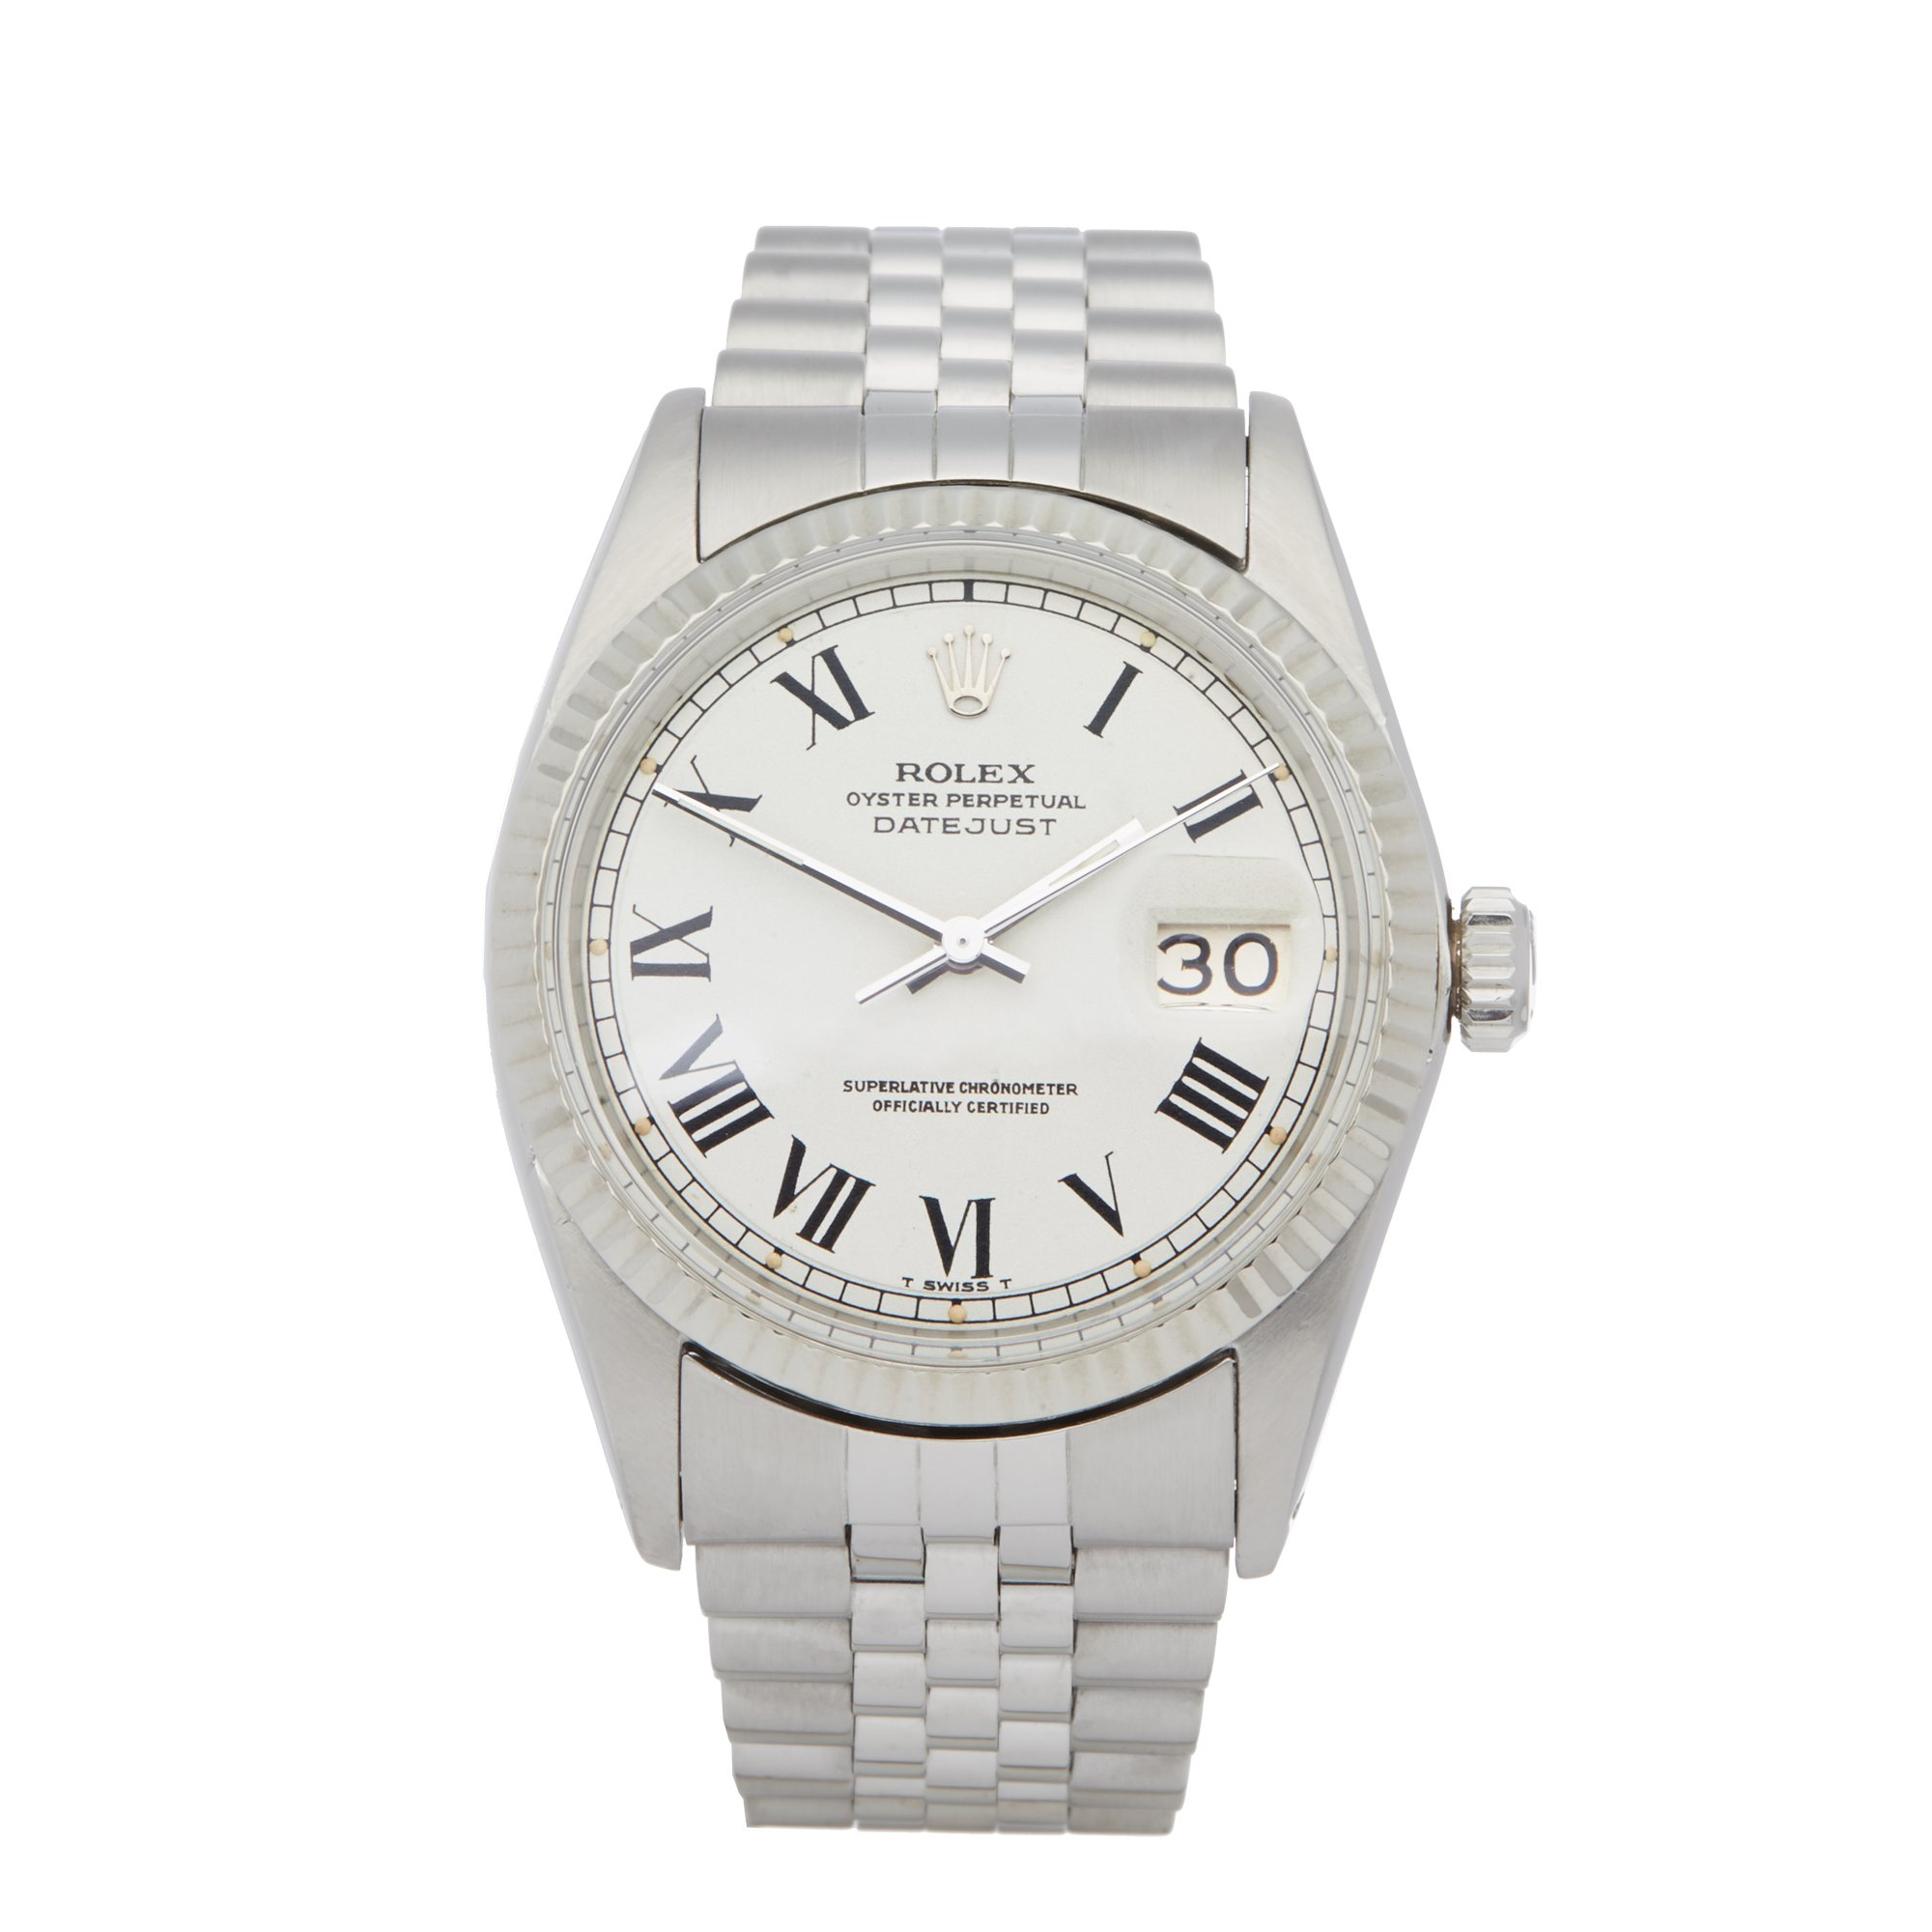 Rolex Datejust 36 Buckley Dial Stainless Steel - 1601 Roestvrij Staal 1601